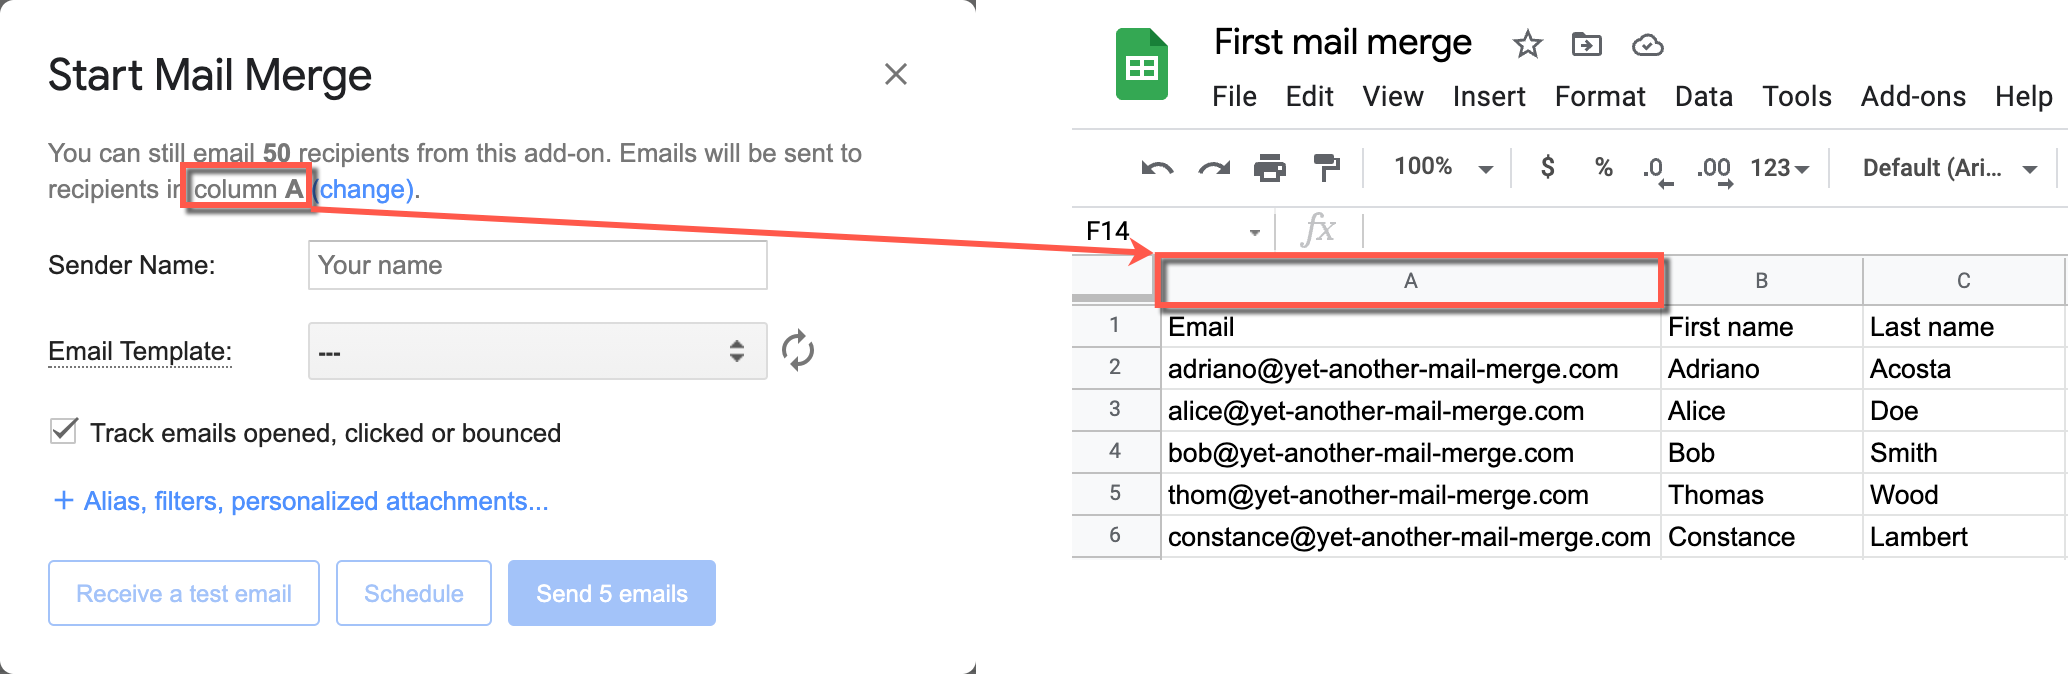 yamm-start-mail-merge-note-email-address-column-v03.png